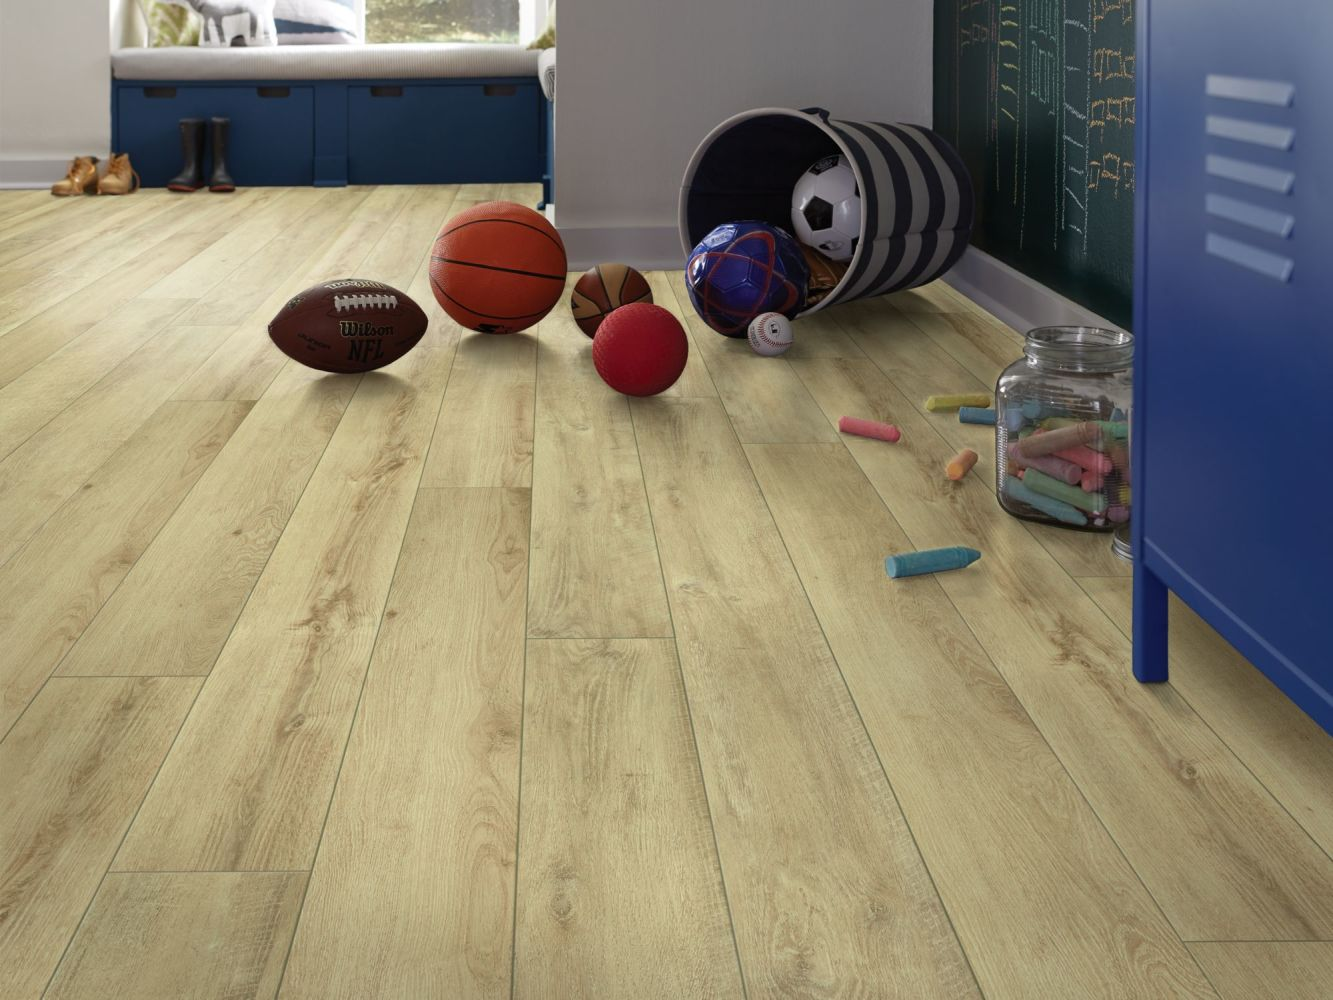 Shaw Floors Resilient Property Solutions Resolute XL HD Plus Classic Oak 00253_VE387